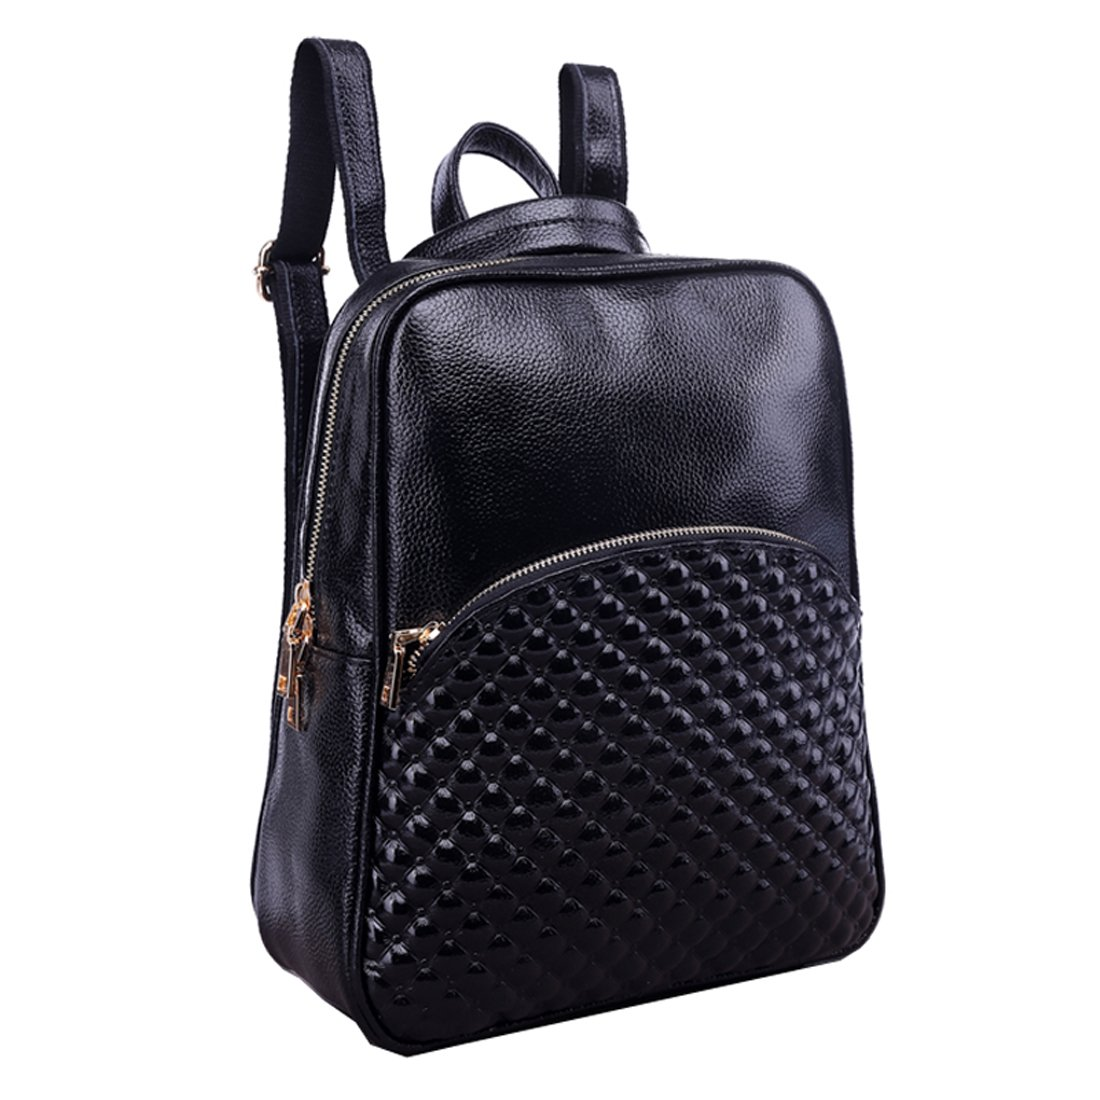 Missmay 2015 Spring Women's Soft Genuine Leather Purse Backpack Cowskin Casual Sports Smooth Black